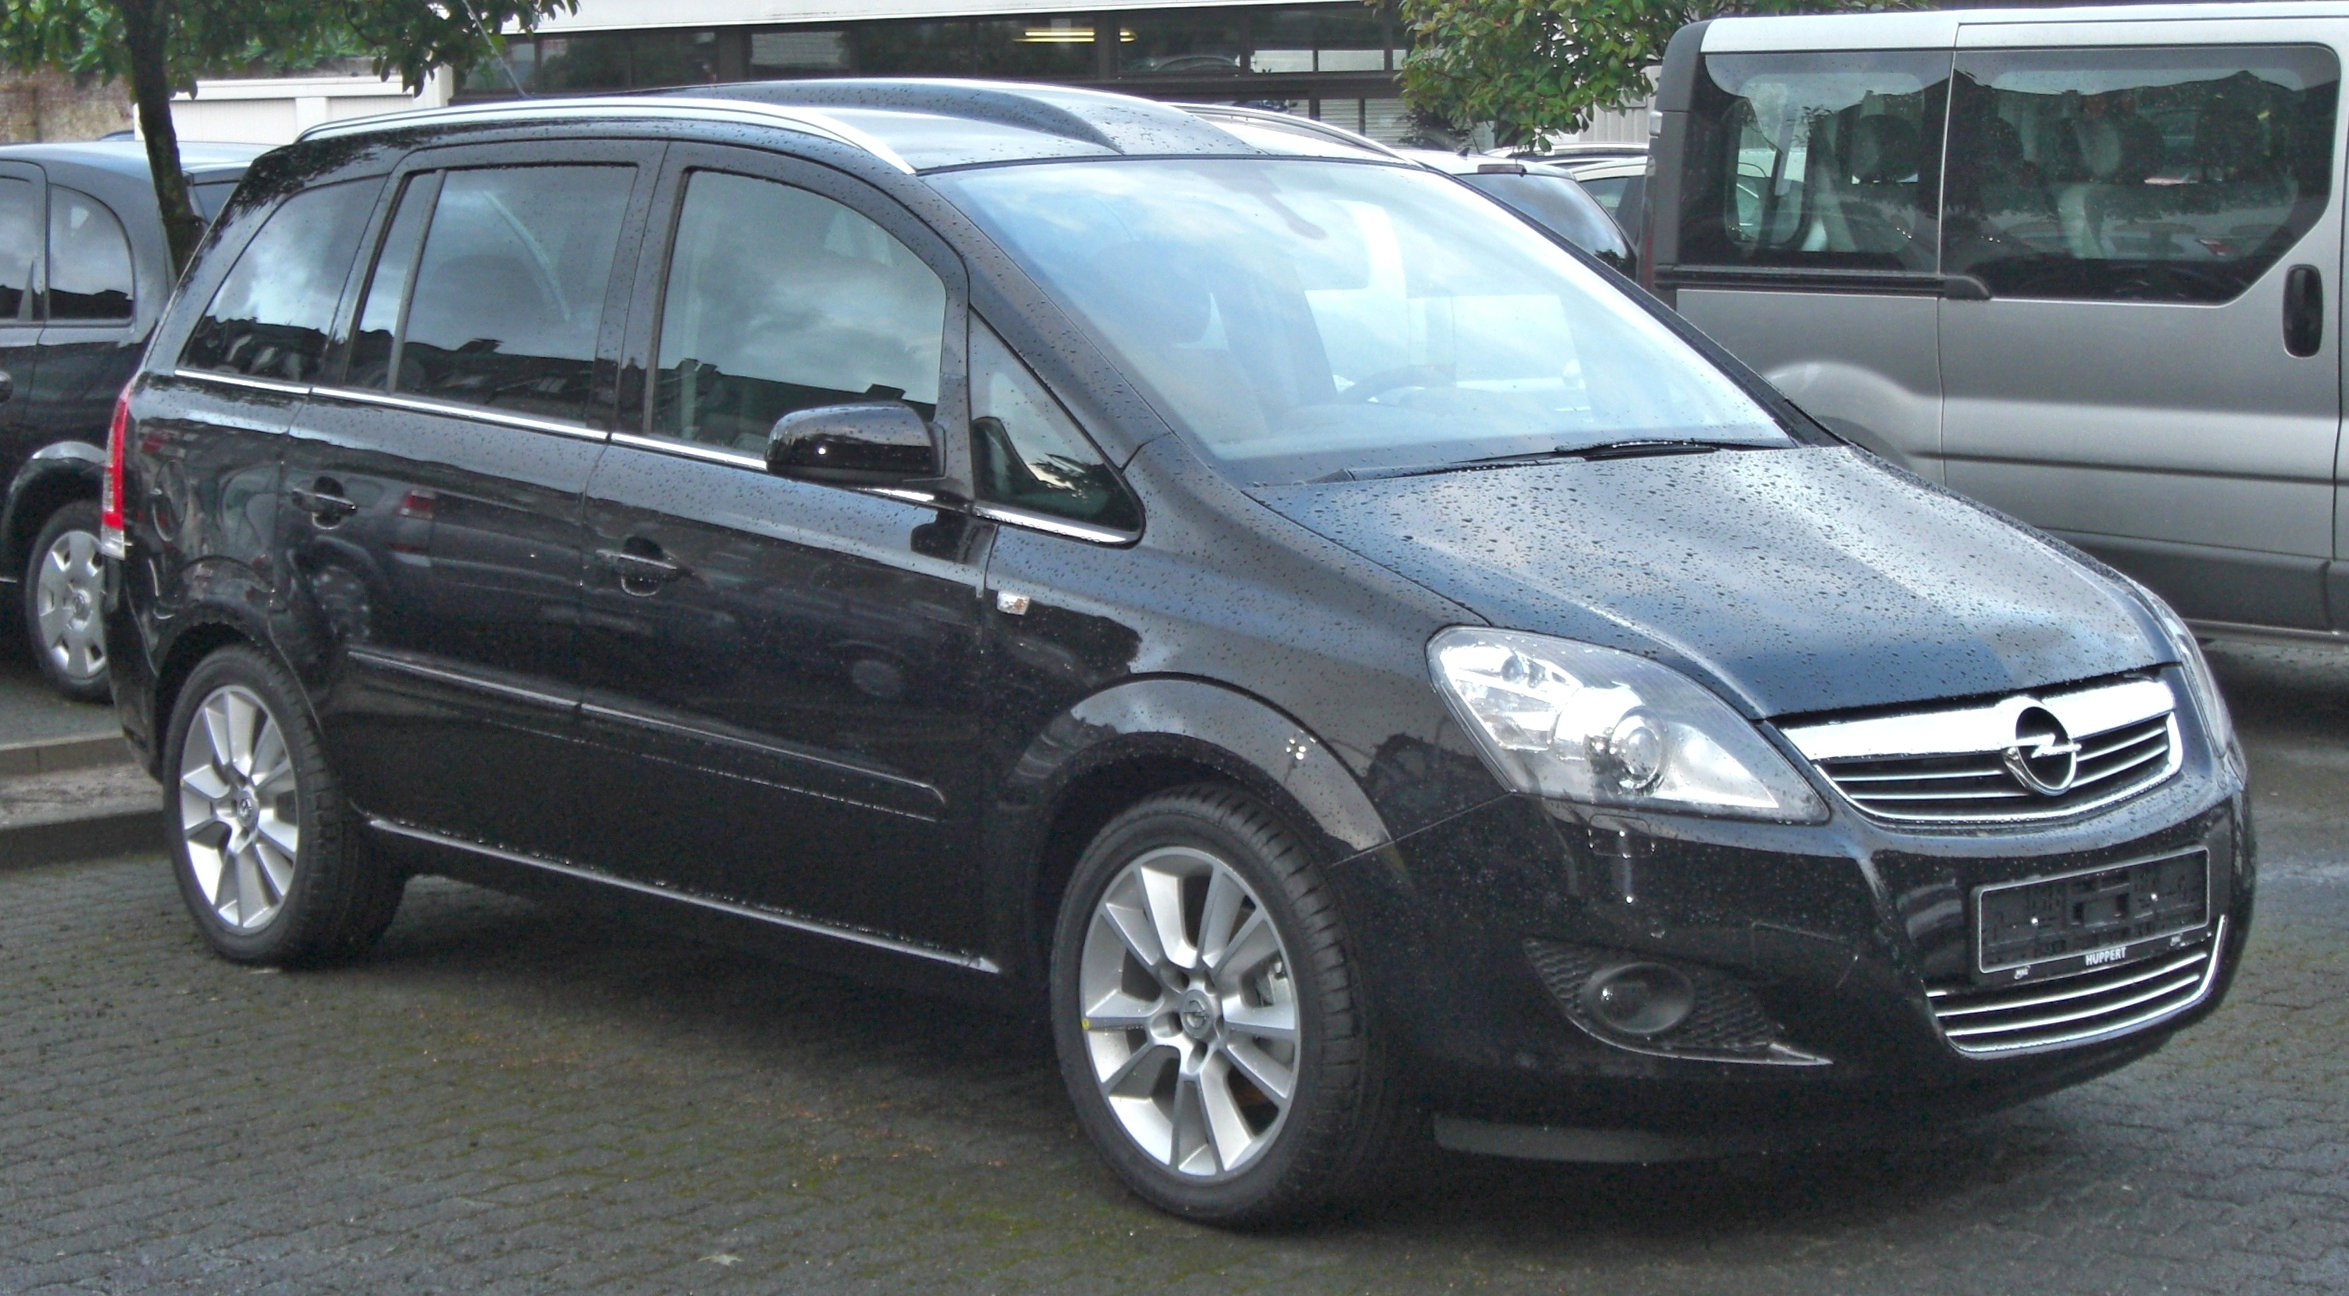 Opel zafira photo - 2